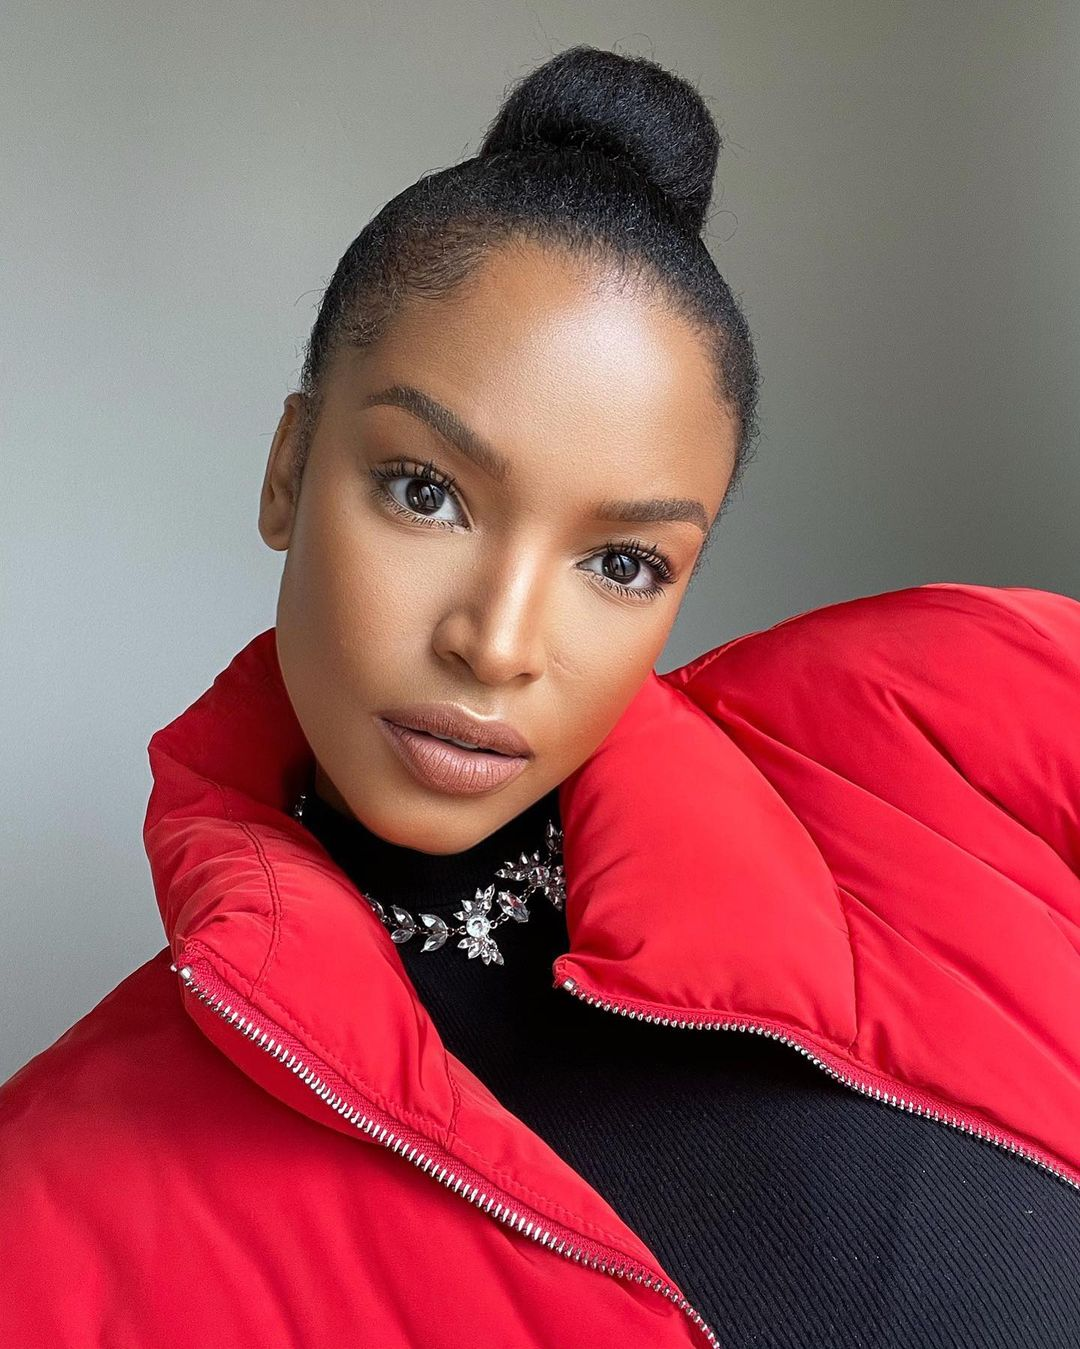 Media Personality Ayanda Thabethe (Being A Woman Is A Lot)